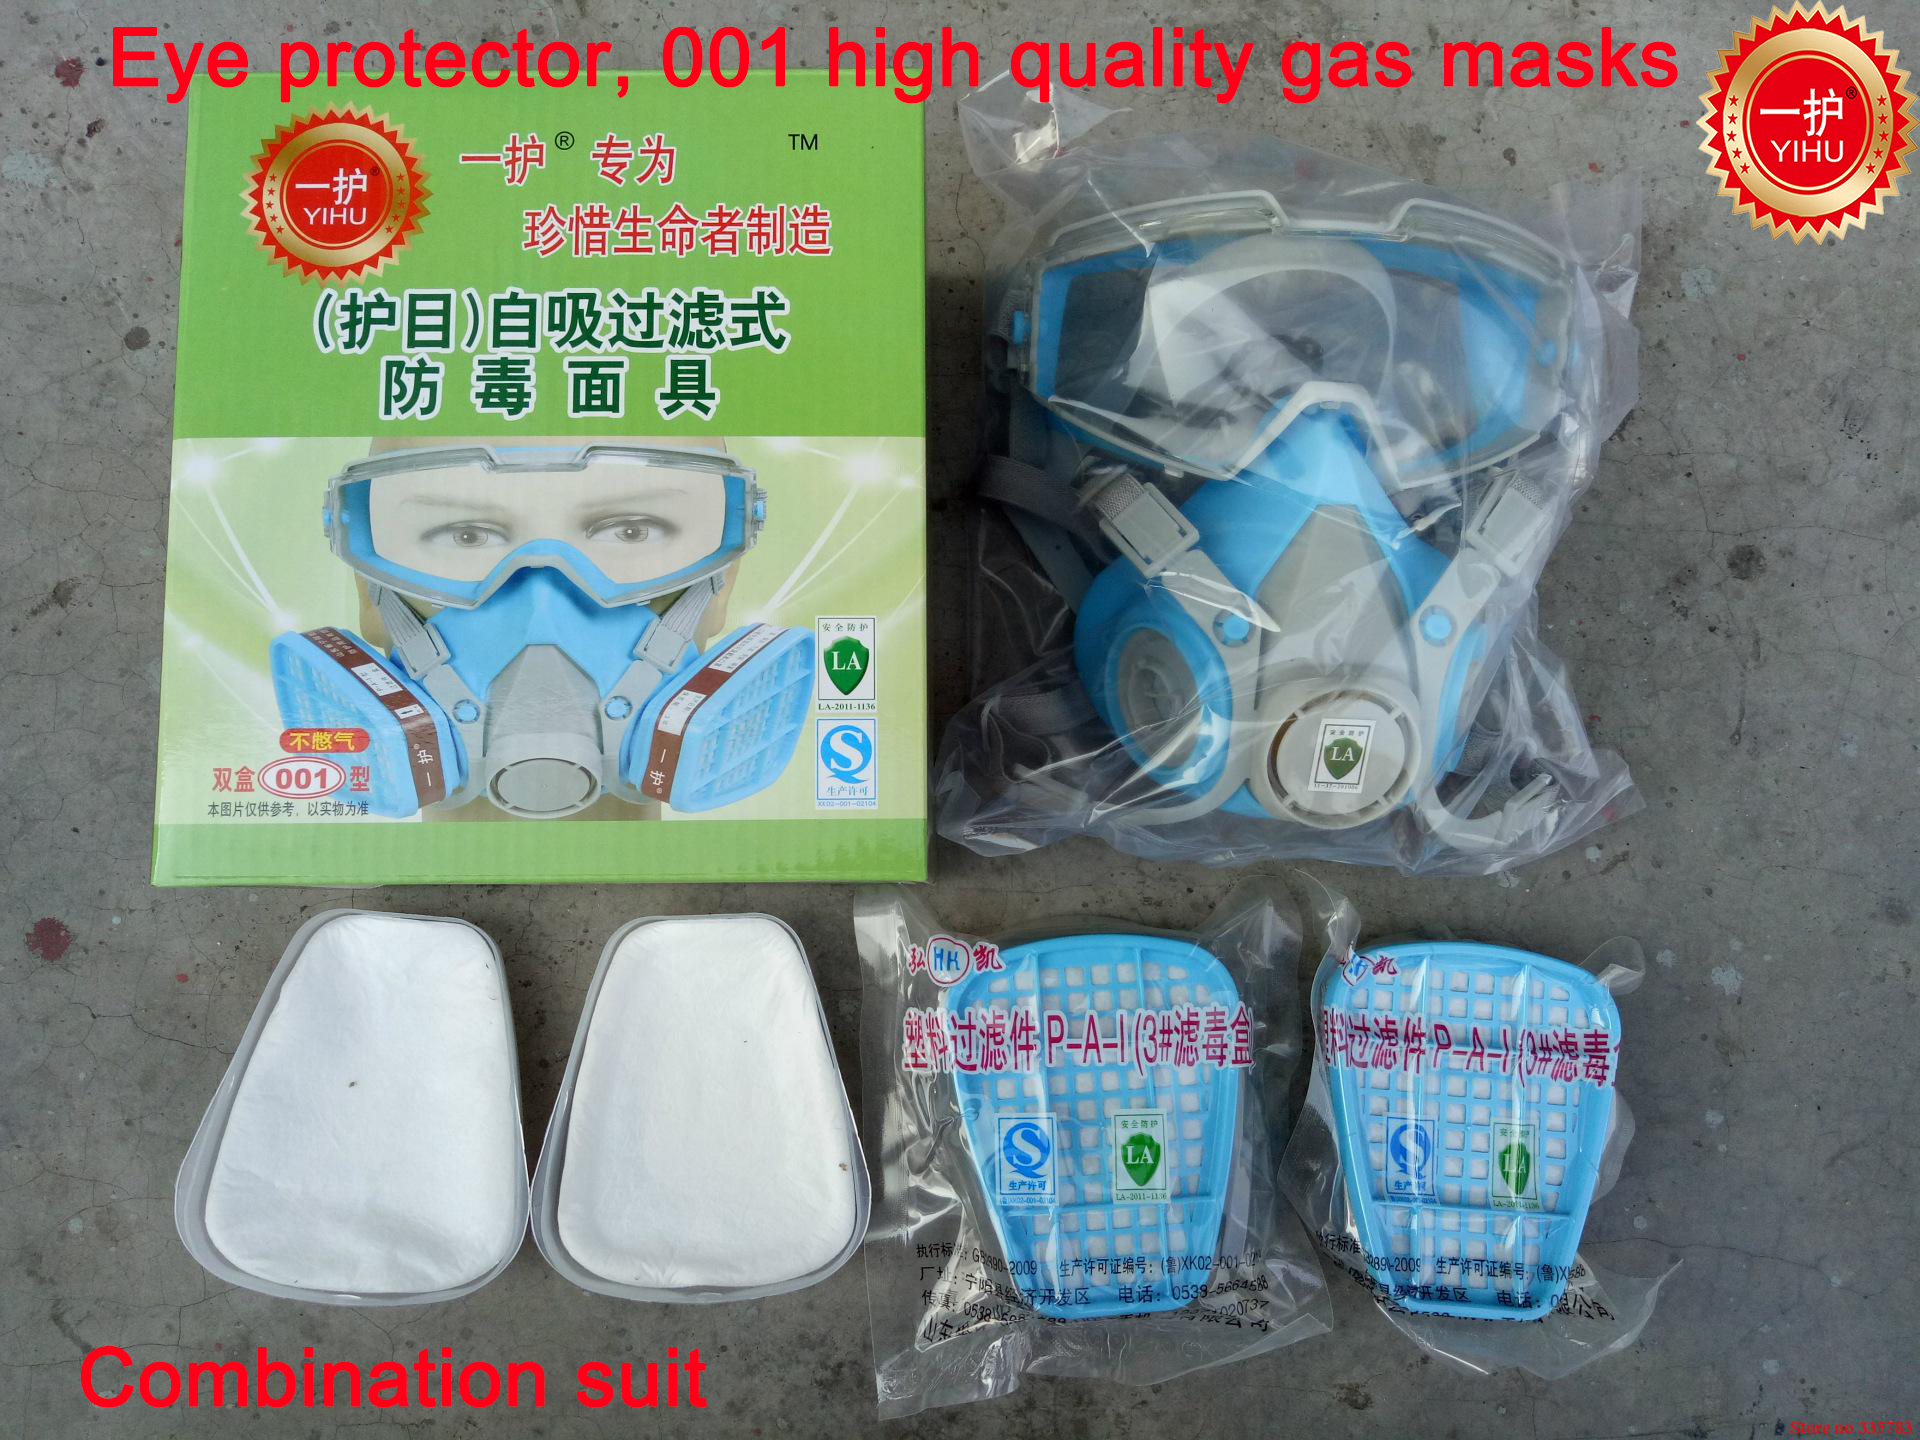 YIHU respirator gas mask High quality 7 a combination paint respirator paint spray pesticides Fire emergency full face gas mask a 7 3200 respirator gas mask high quality carbon filter mask paint pesticides spray spraying mask industrial safety face shield